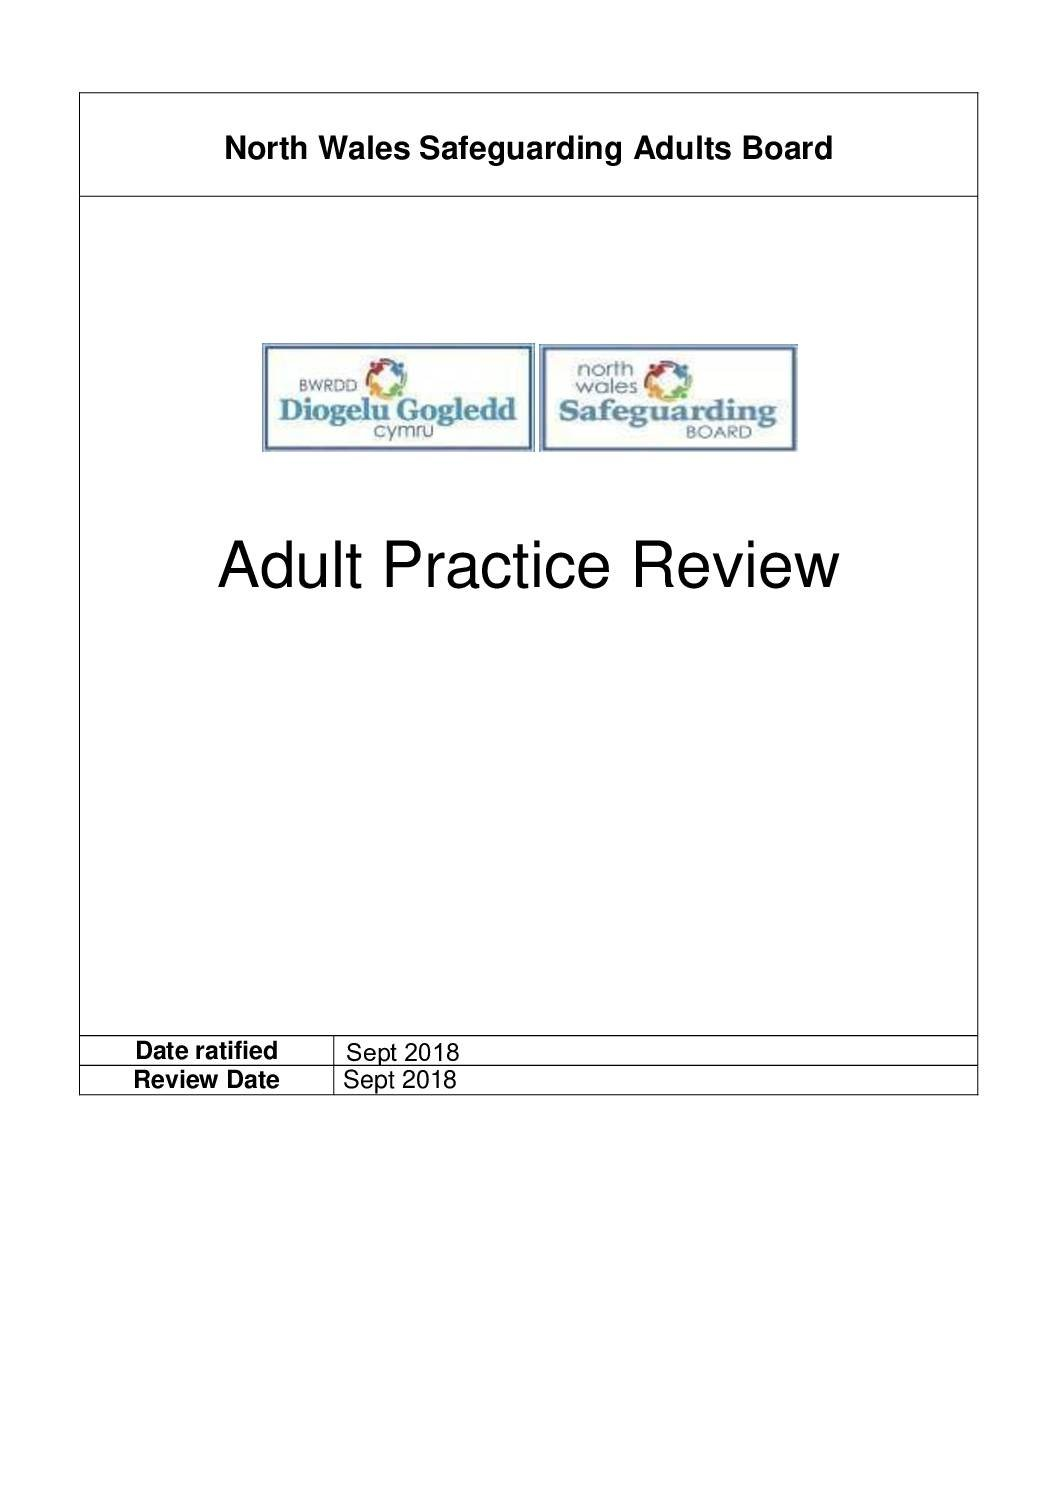 Adult Practice Review Protocol